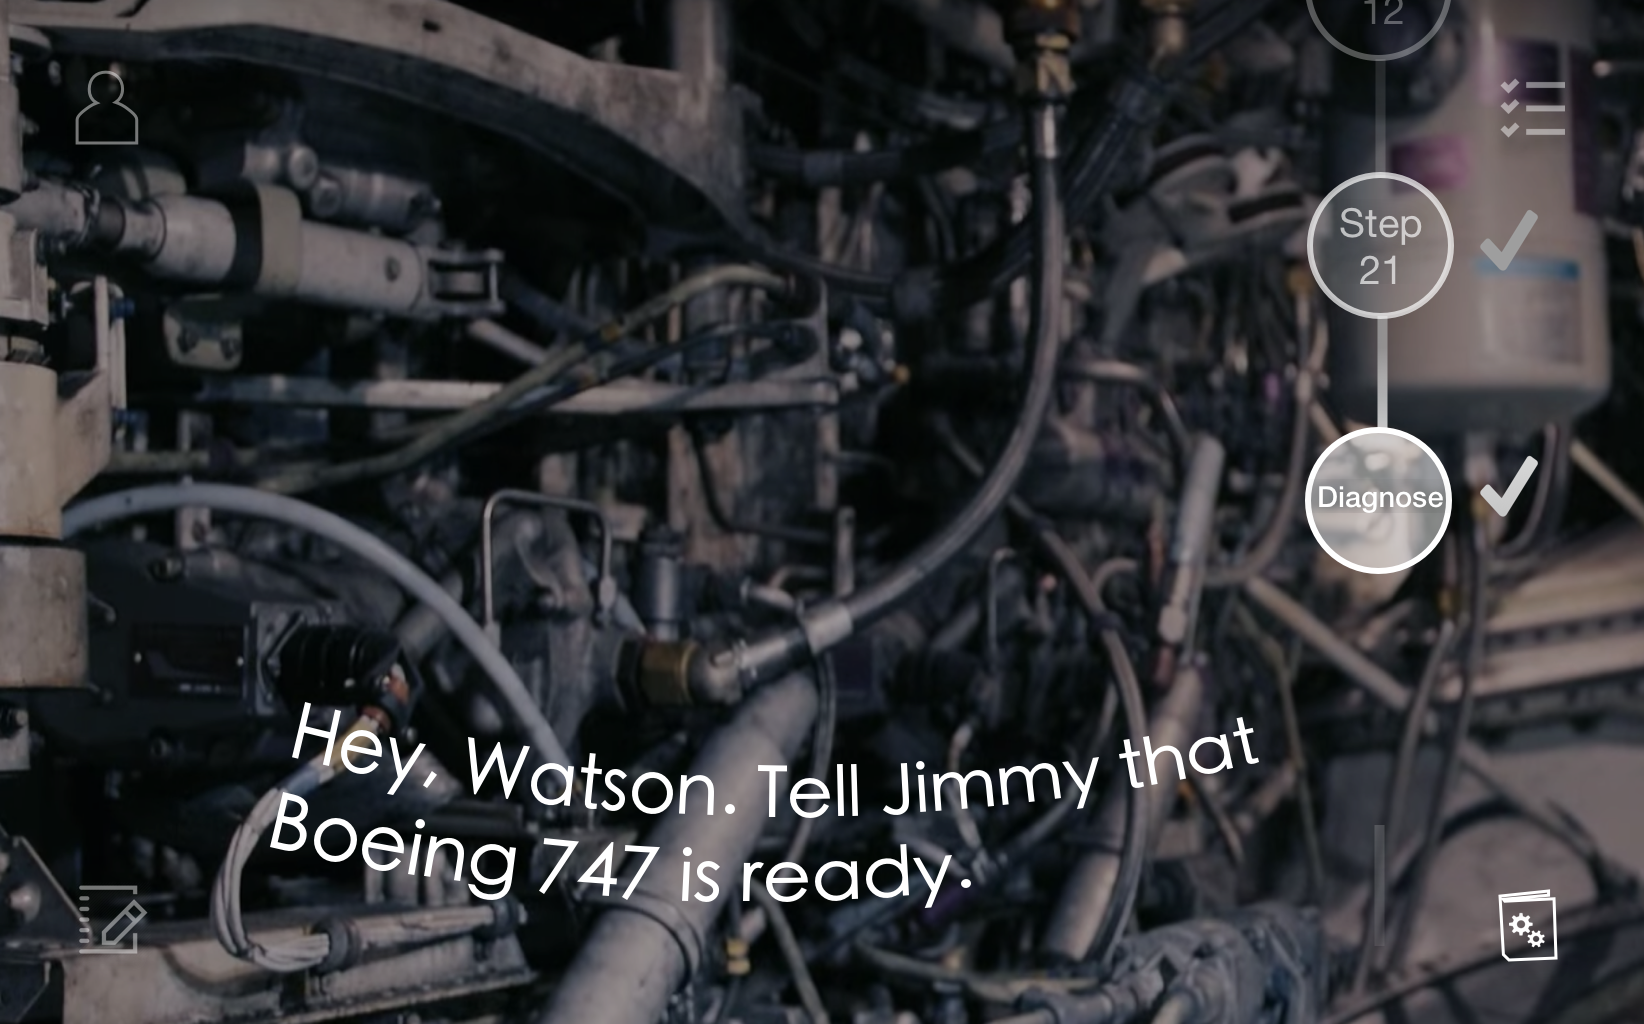 Repair Manual with Watson Assistant Copy 4.png